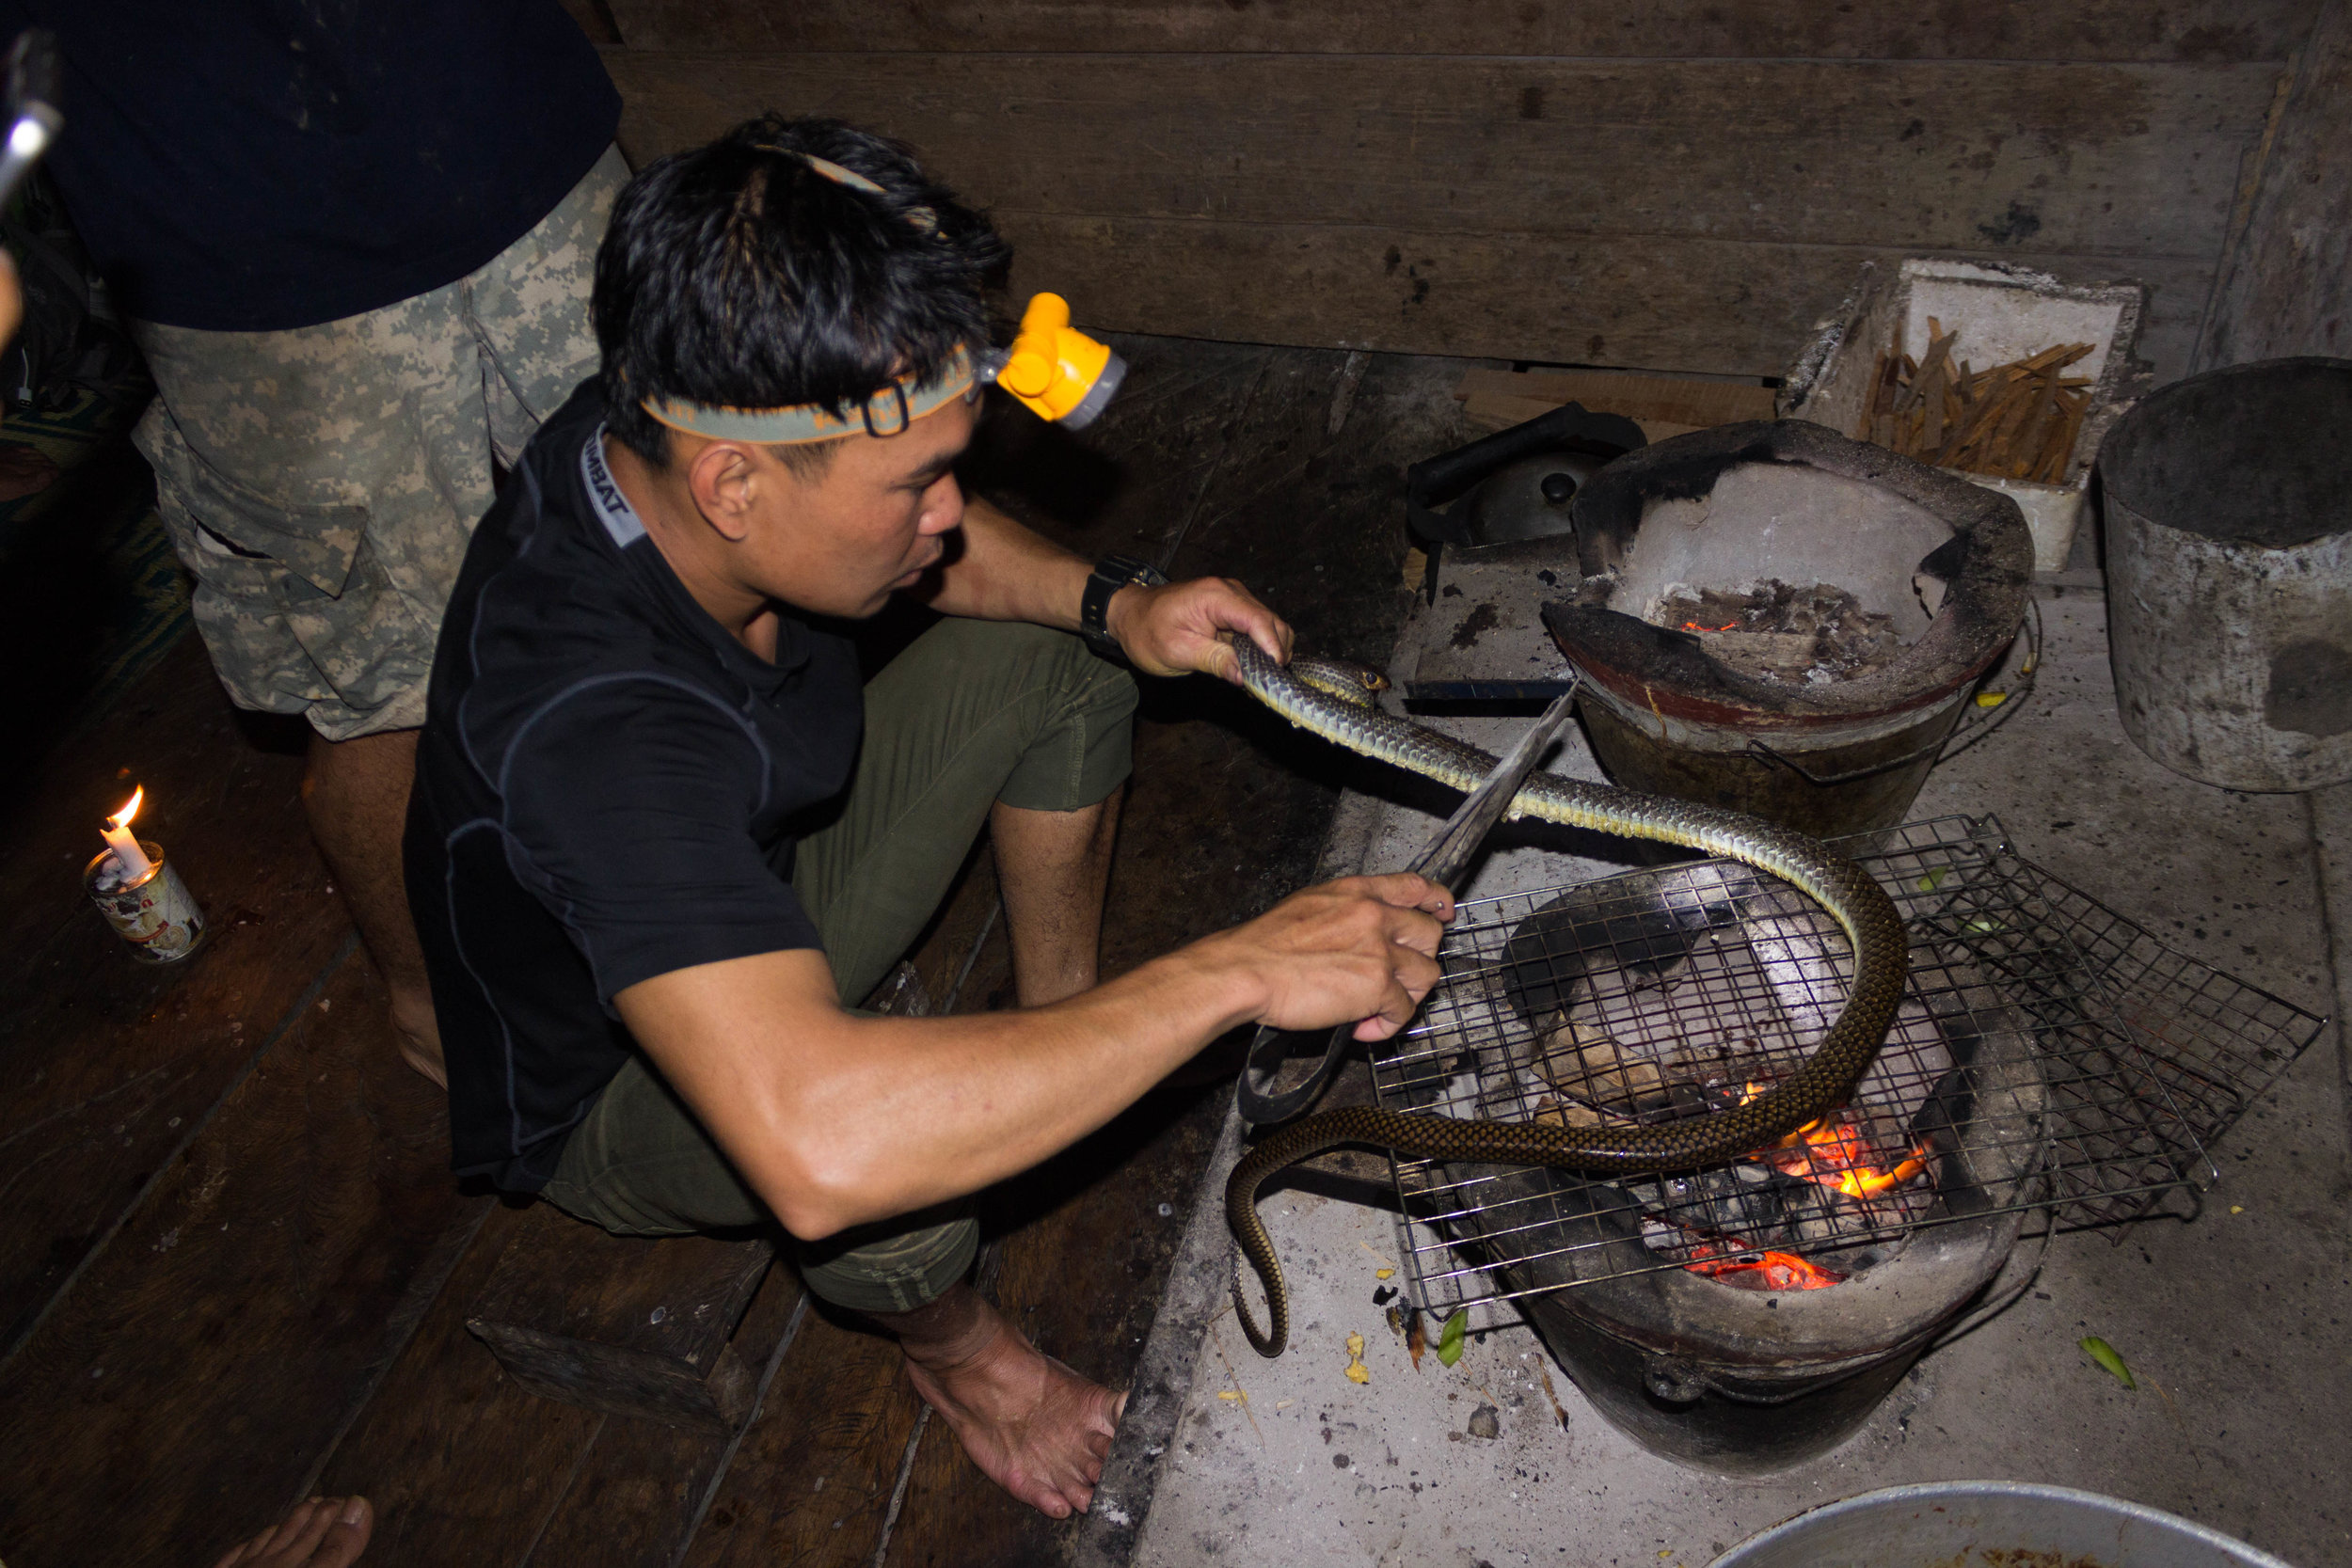 Cooking the snake